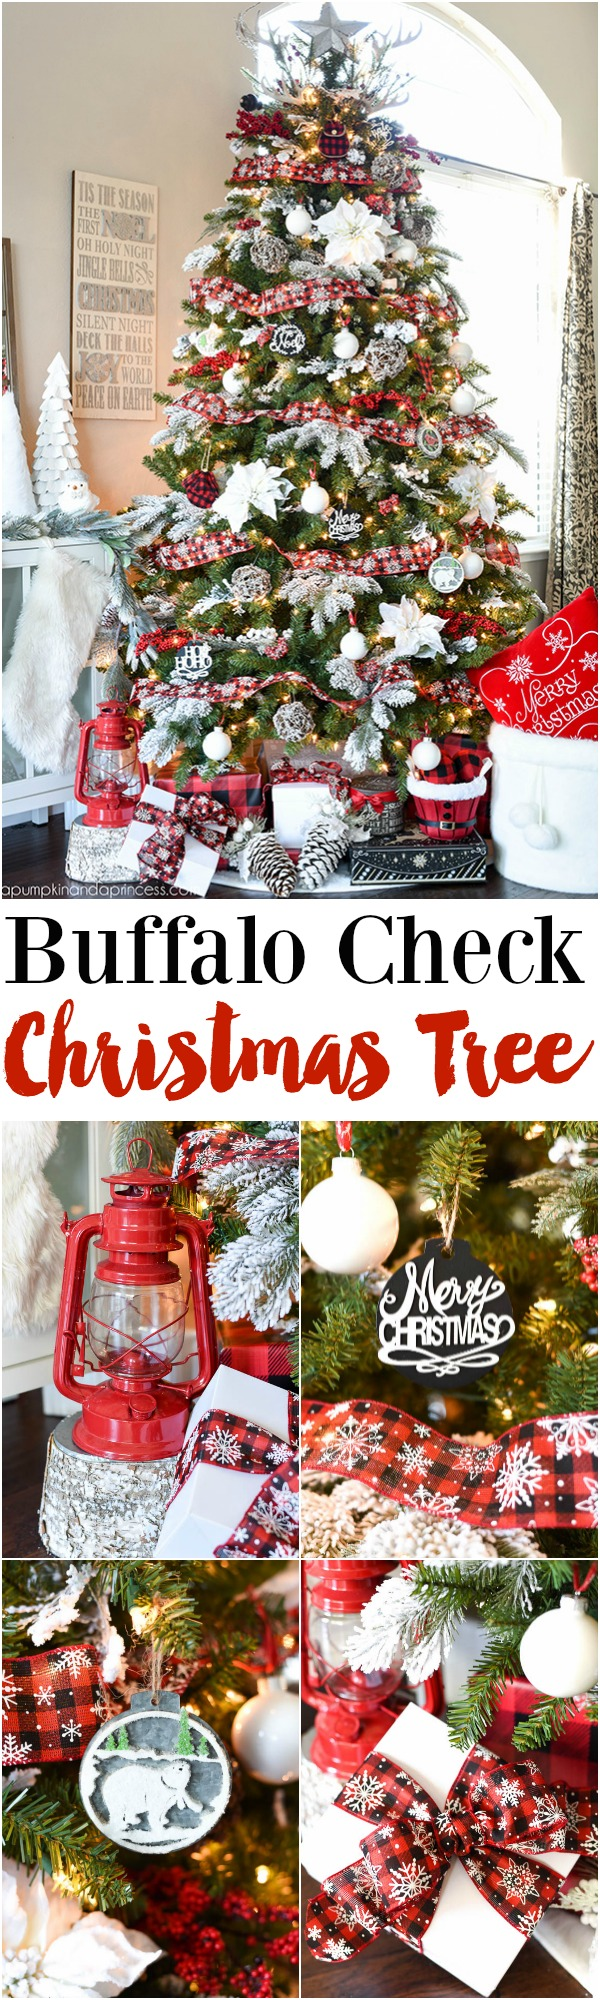 buffalo check christmas tree michaels dream tree - Buffalo Plaid Christmas Decor